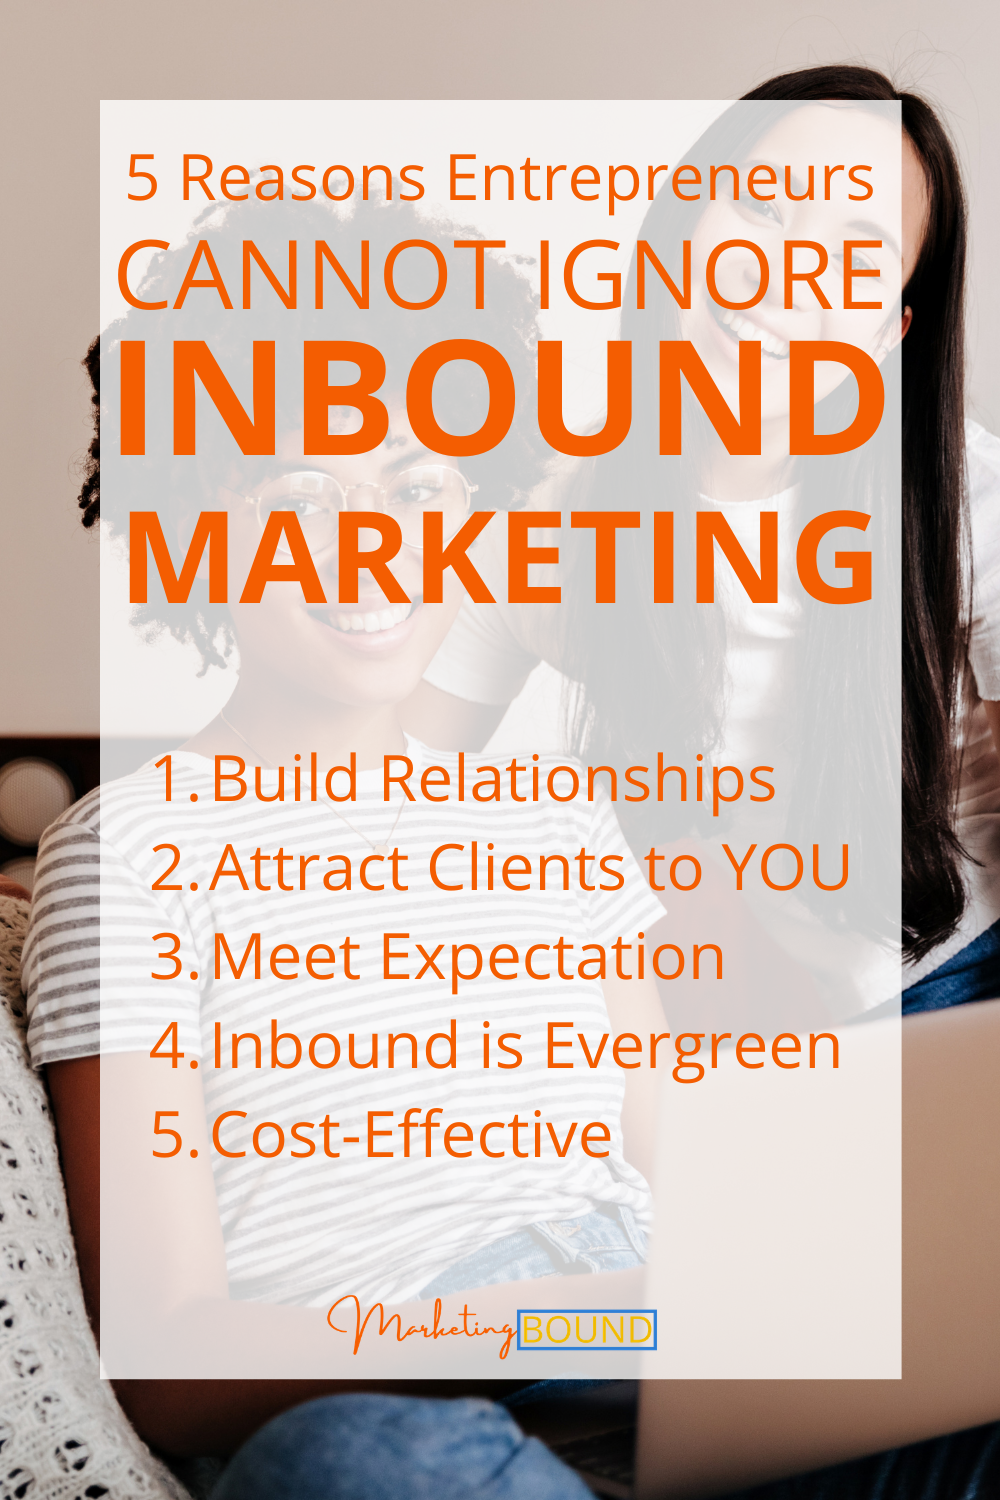 Why entrepreneurs cannot ignore inbound marketing